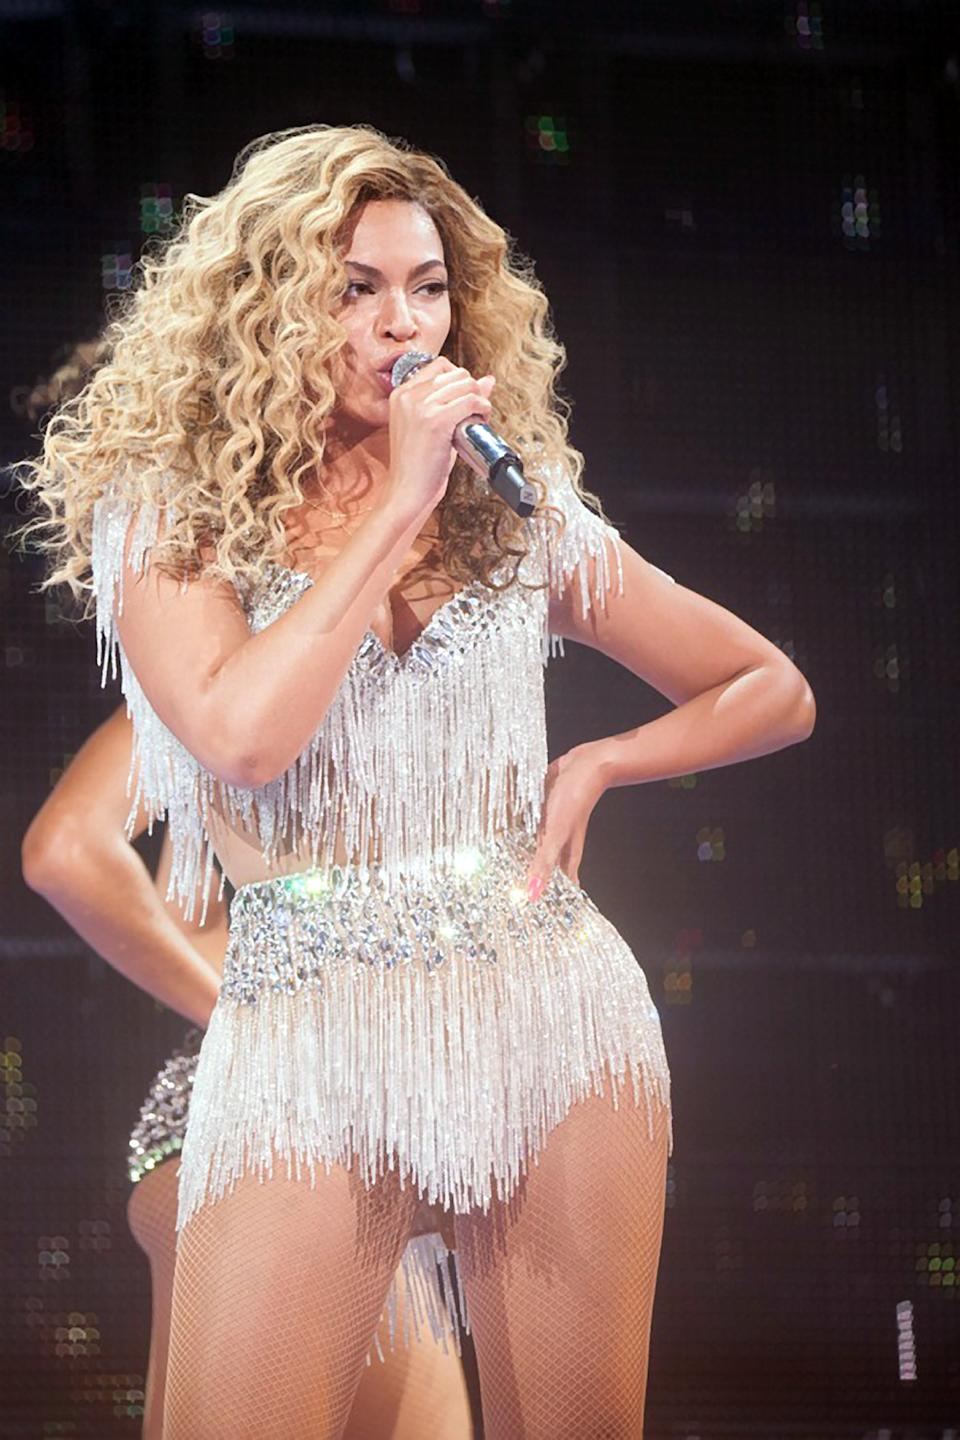 In this Friday May 25, 2012 photo provided by Parkwood Entertainment, Beyonce performs at Revel in Atlantic City, N.J., for the resort's premiere.  It is the first of four scheduled shows for Memorial Day weekend.  (AP Photo/Parkwood Entertainment, Robin Harper)